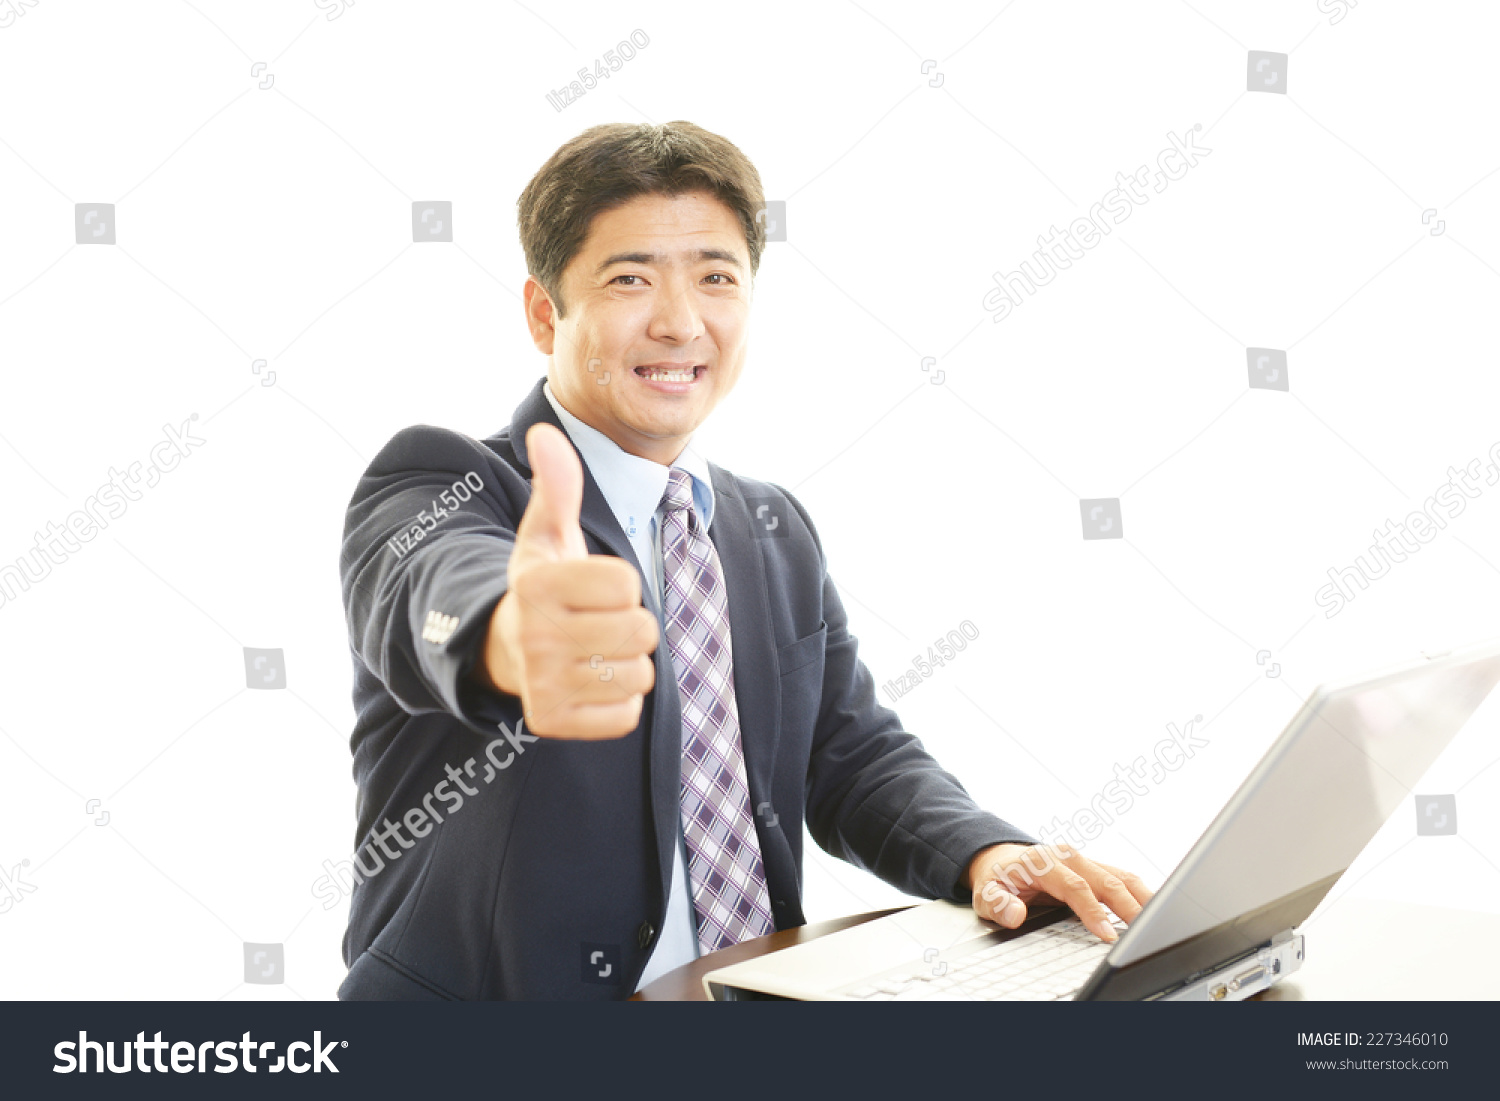 Smiling businessman using laptop #227346010